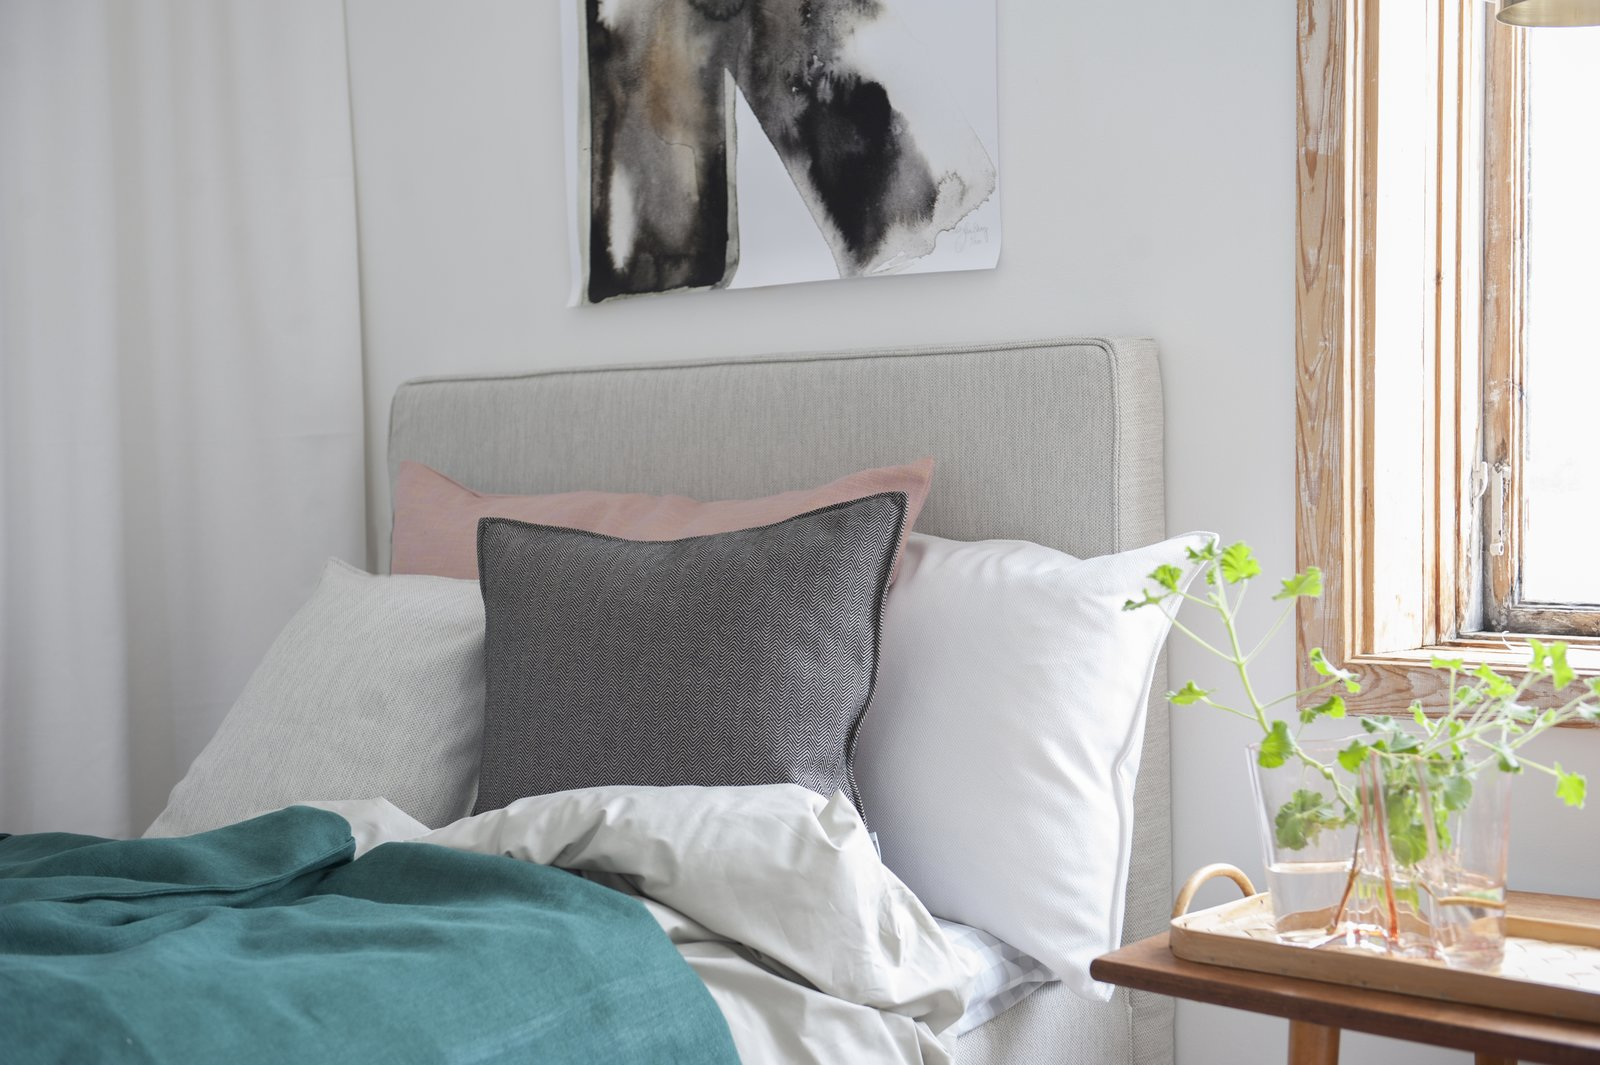 Photo 4 of 4 in Time to update your boudoir: styling tips for the bedroom